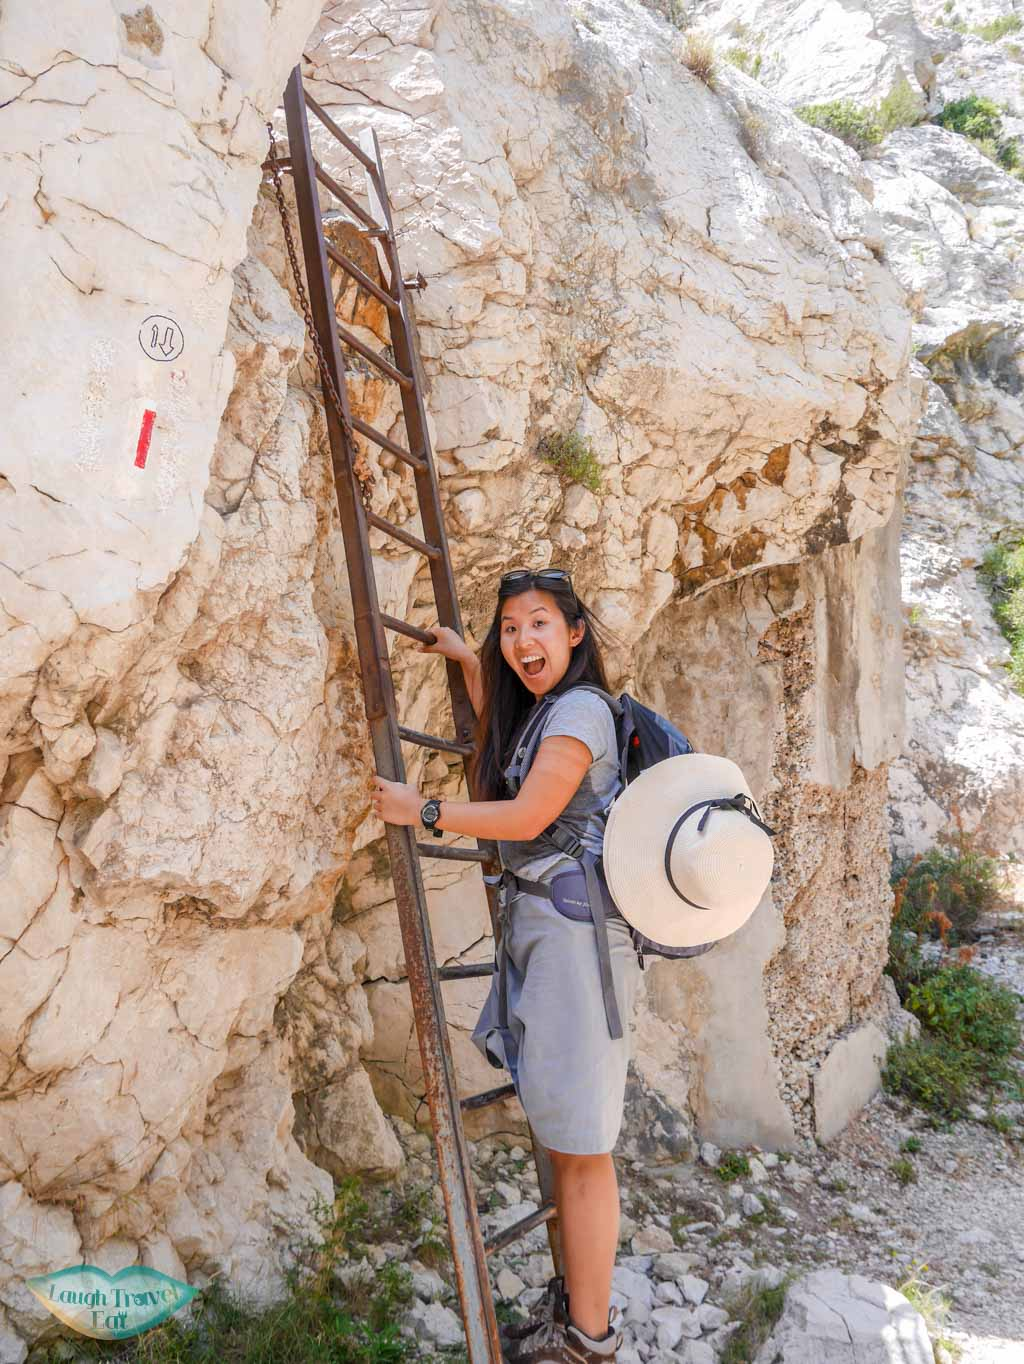 steel ladder from calanque de sugiton to calanque de morgion | Laugh Travel Eat